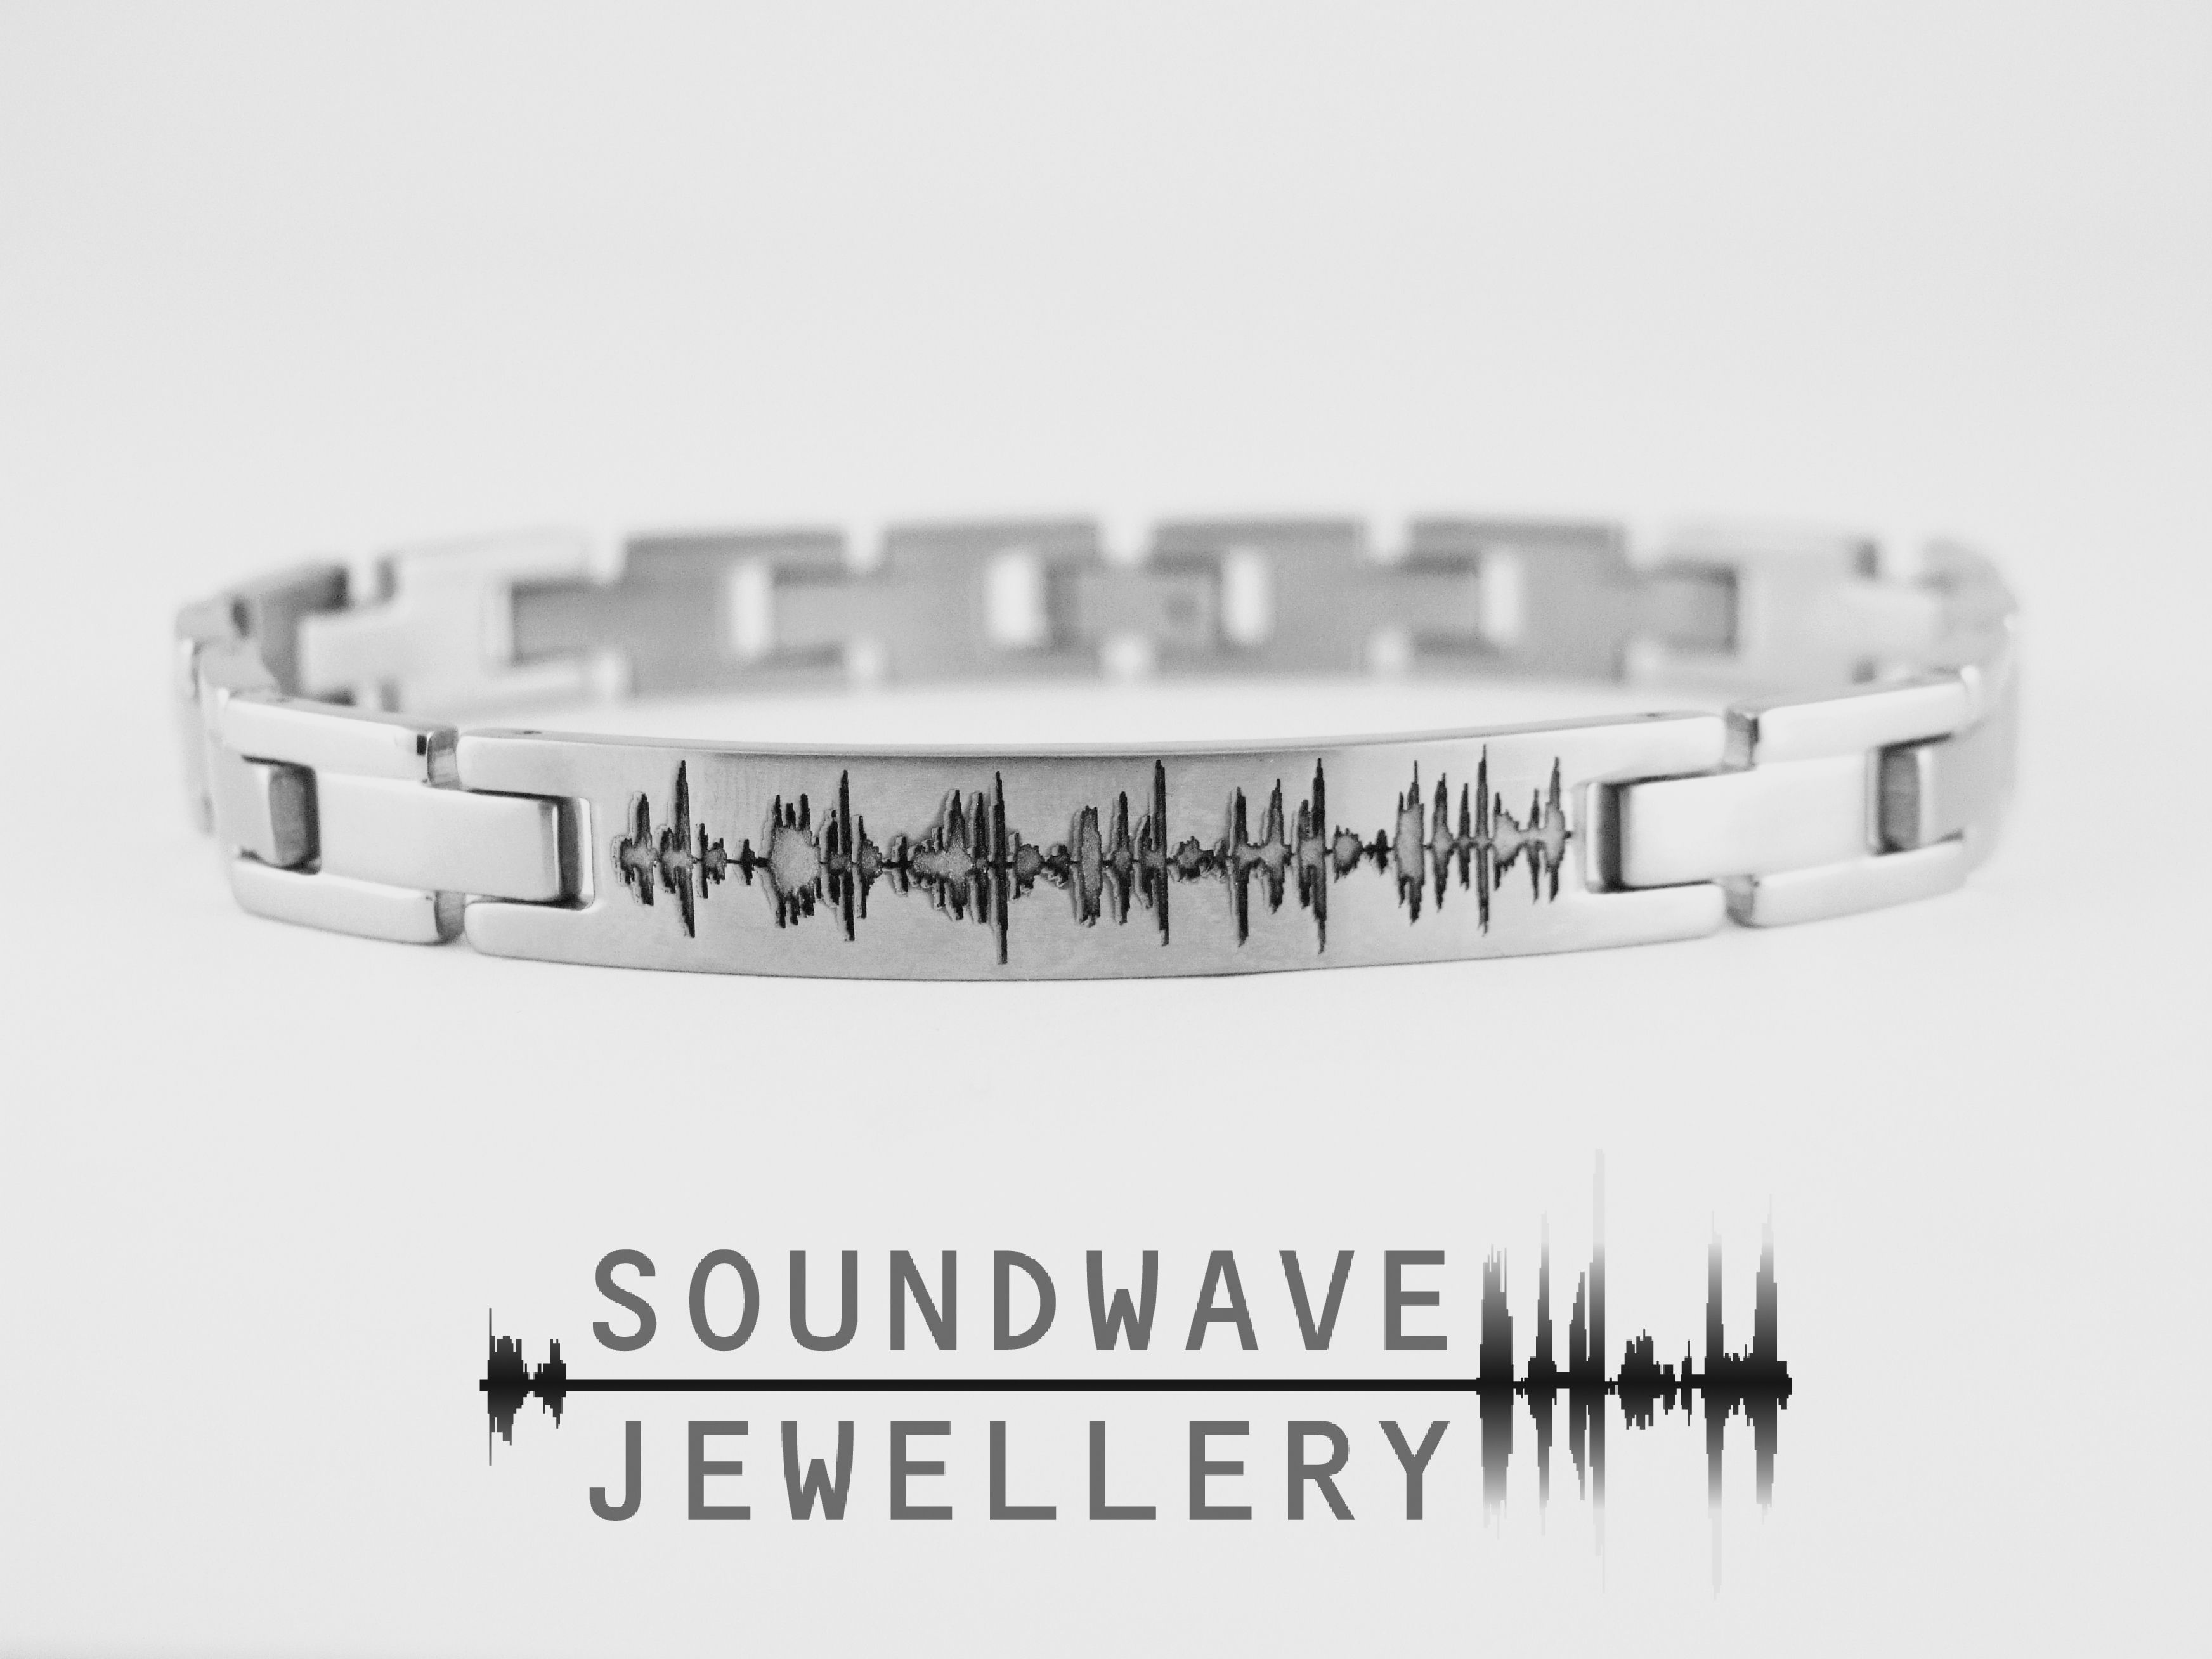 Custom Soundwave Bracelet Soundwavejewellery Is A Unique Way To Express Yourself Record Your Own Personal Message Choose Favorite Song Or An